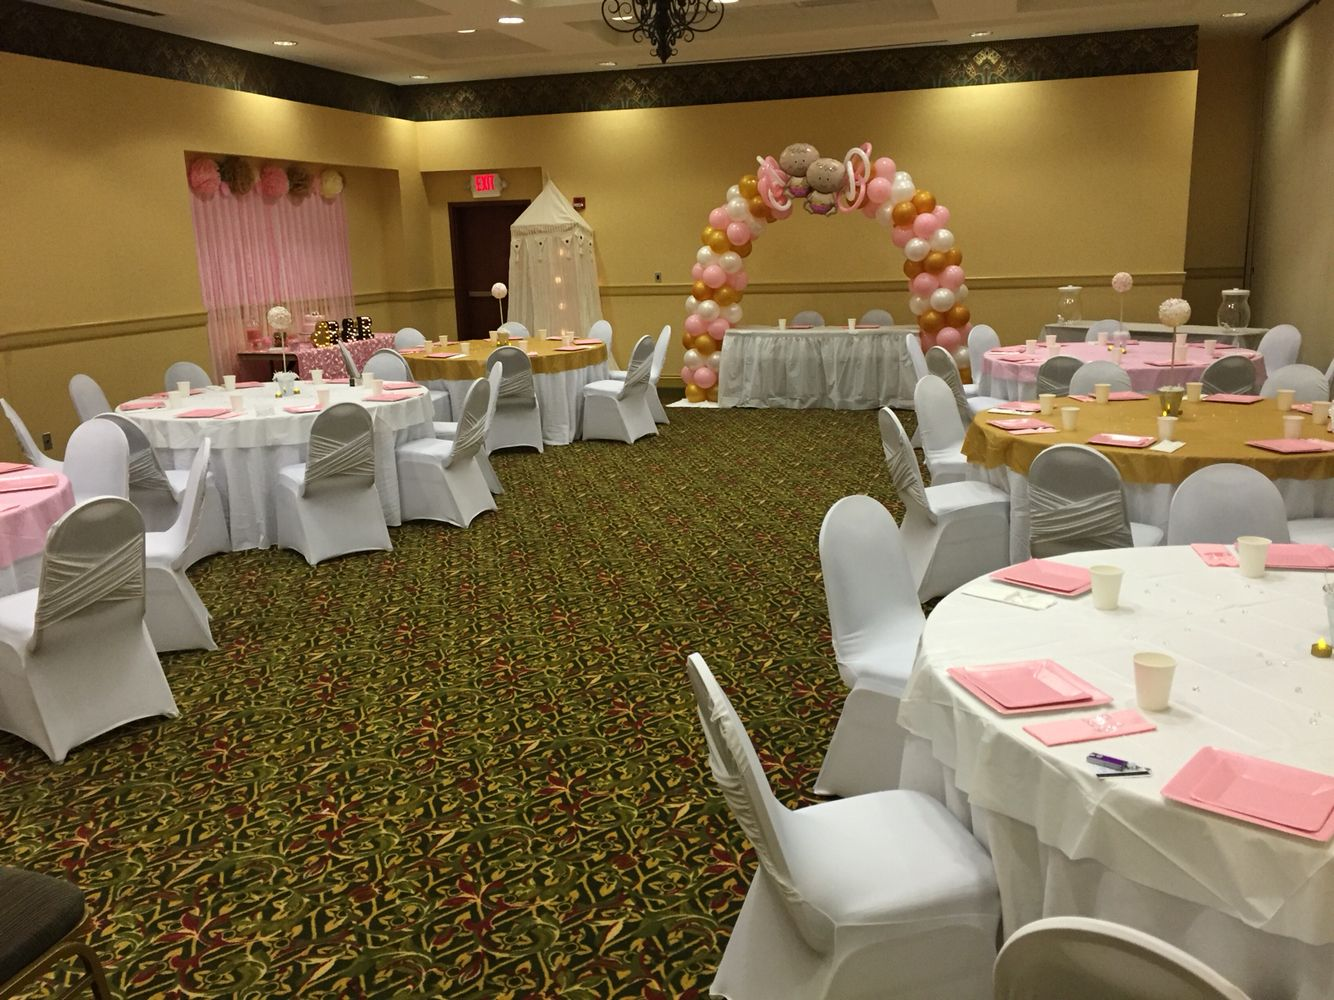 Baby Shower Room Set Up Ideas Full room setup Pearl Baby Shower, Room Setup, Twin Girls, Baby Gender,